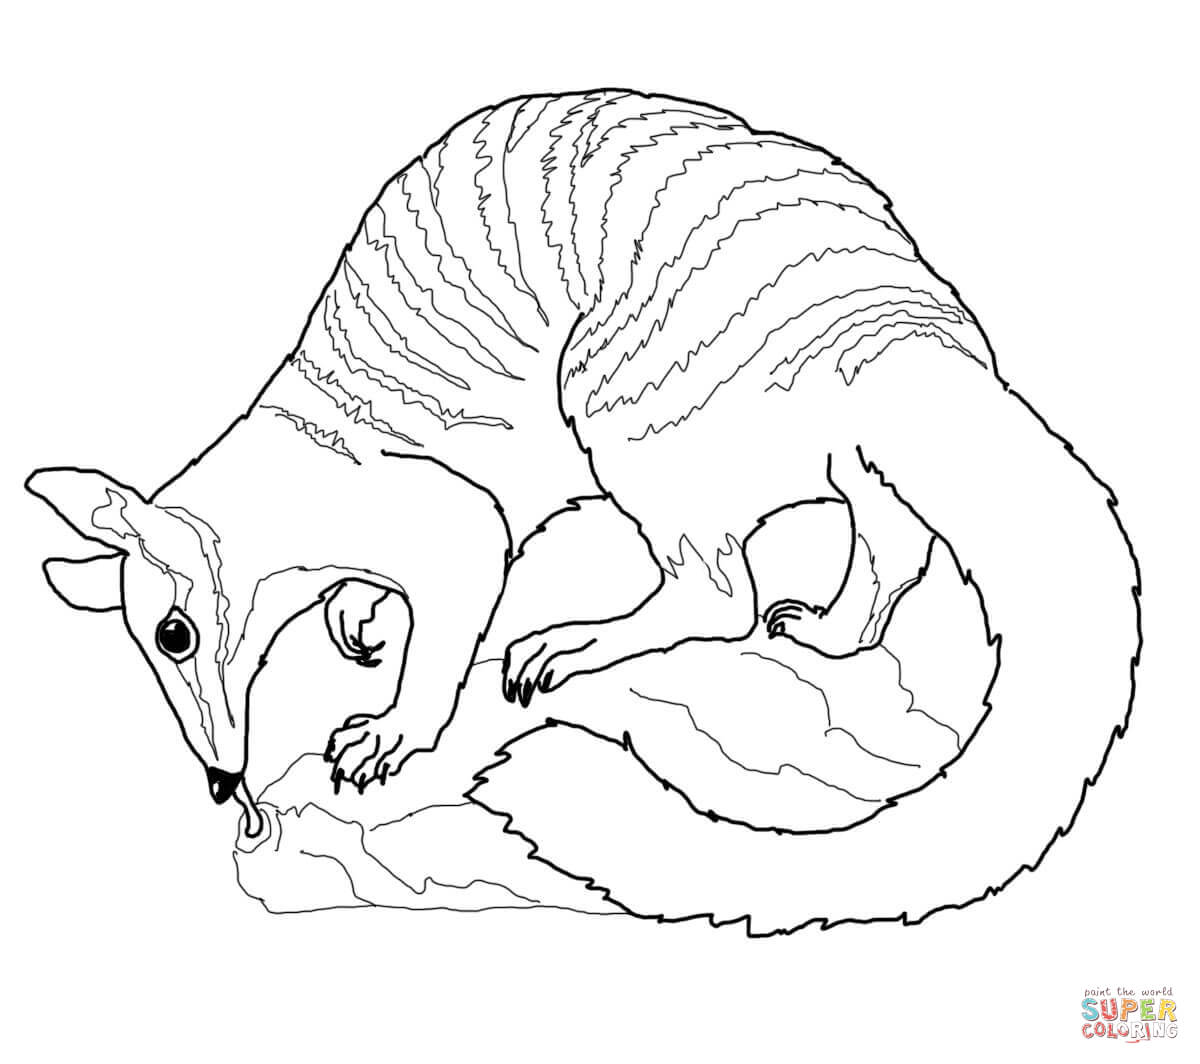 wombat colouring pages download wombat coloring for free designlooter 2020 colouring pages wombat